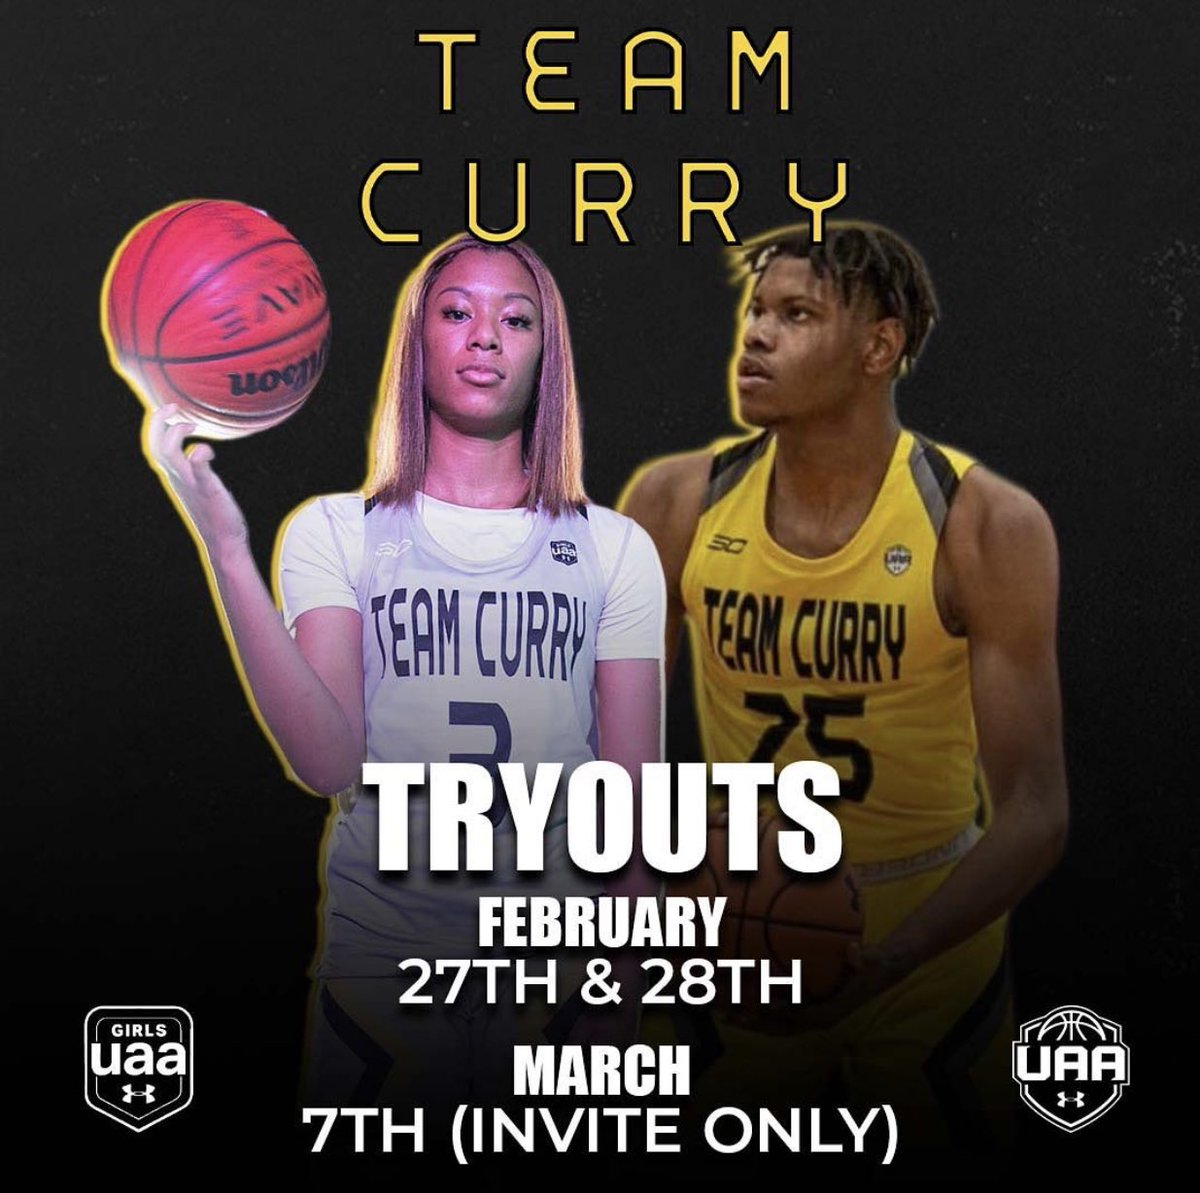 Tryouts are only a few days away! Hit the link below for more information! #GUAA #UAA #CURRYBRAND